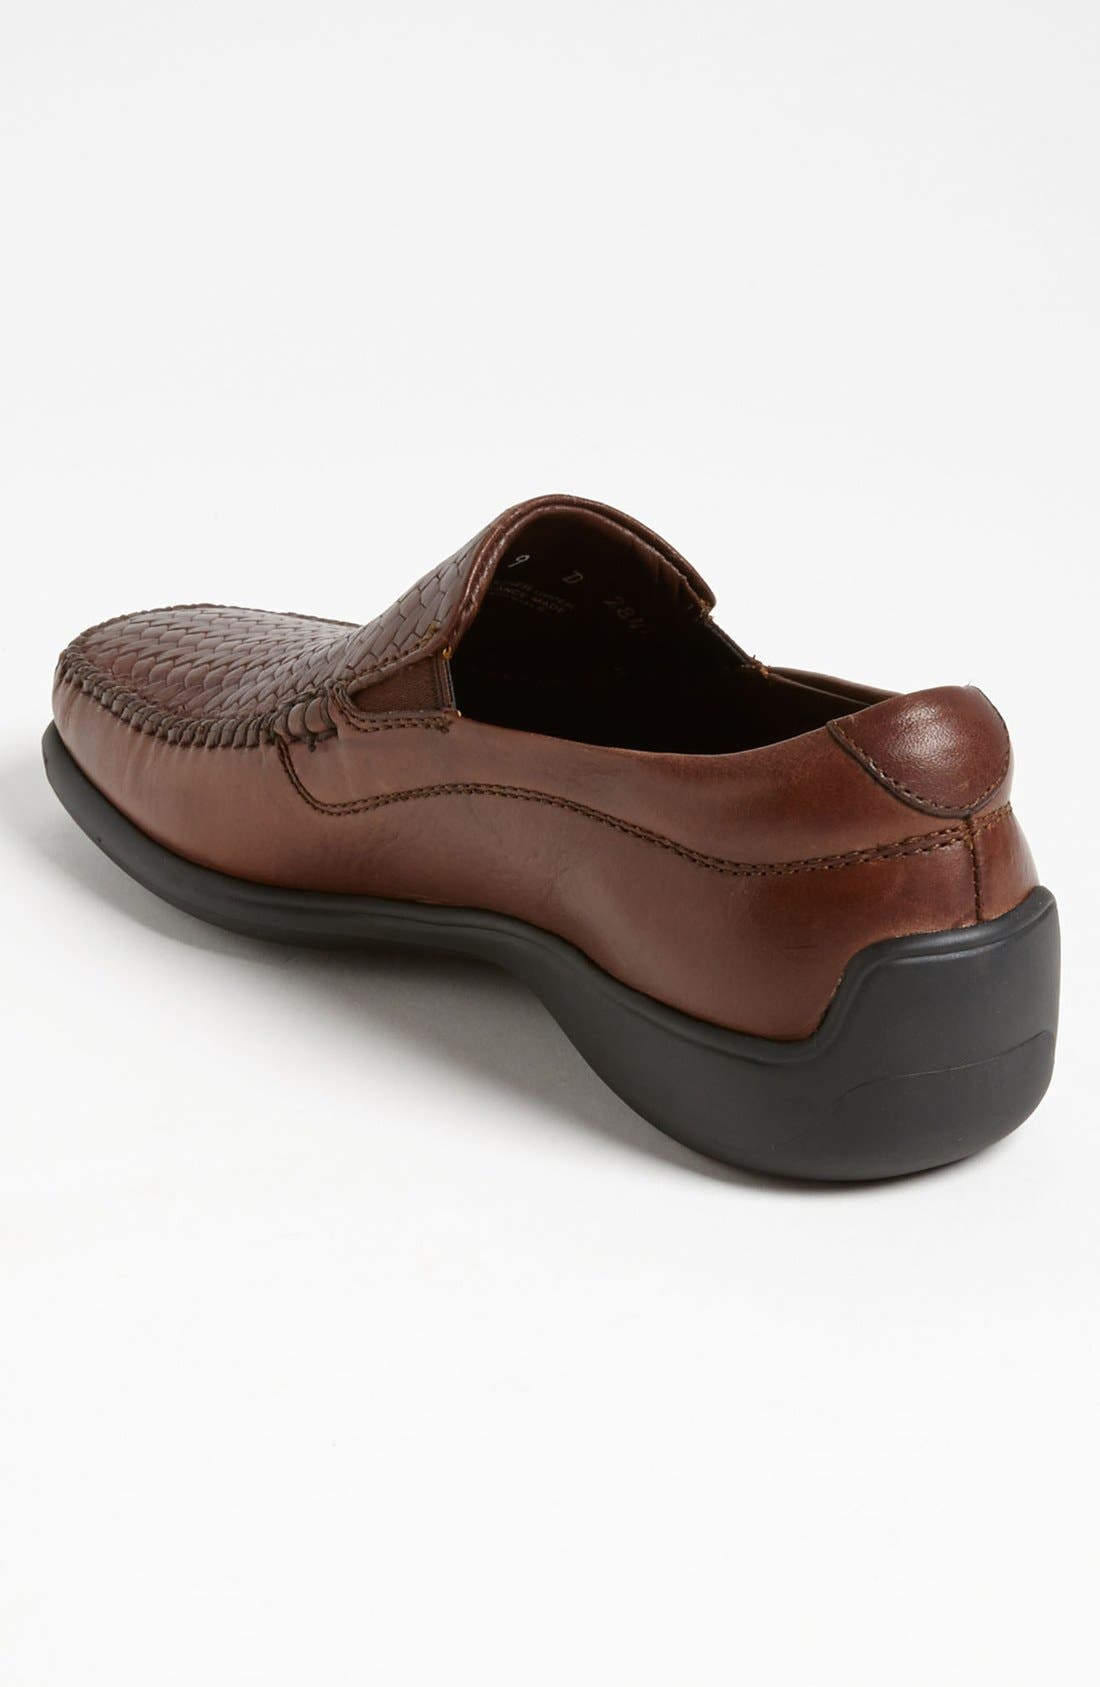 'Palermo' Loafer,                             Alternate thumbnail 3, color,                             200